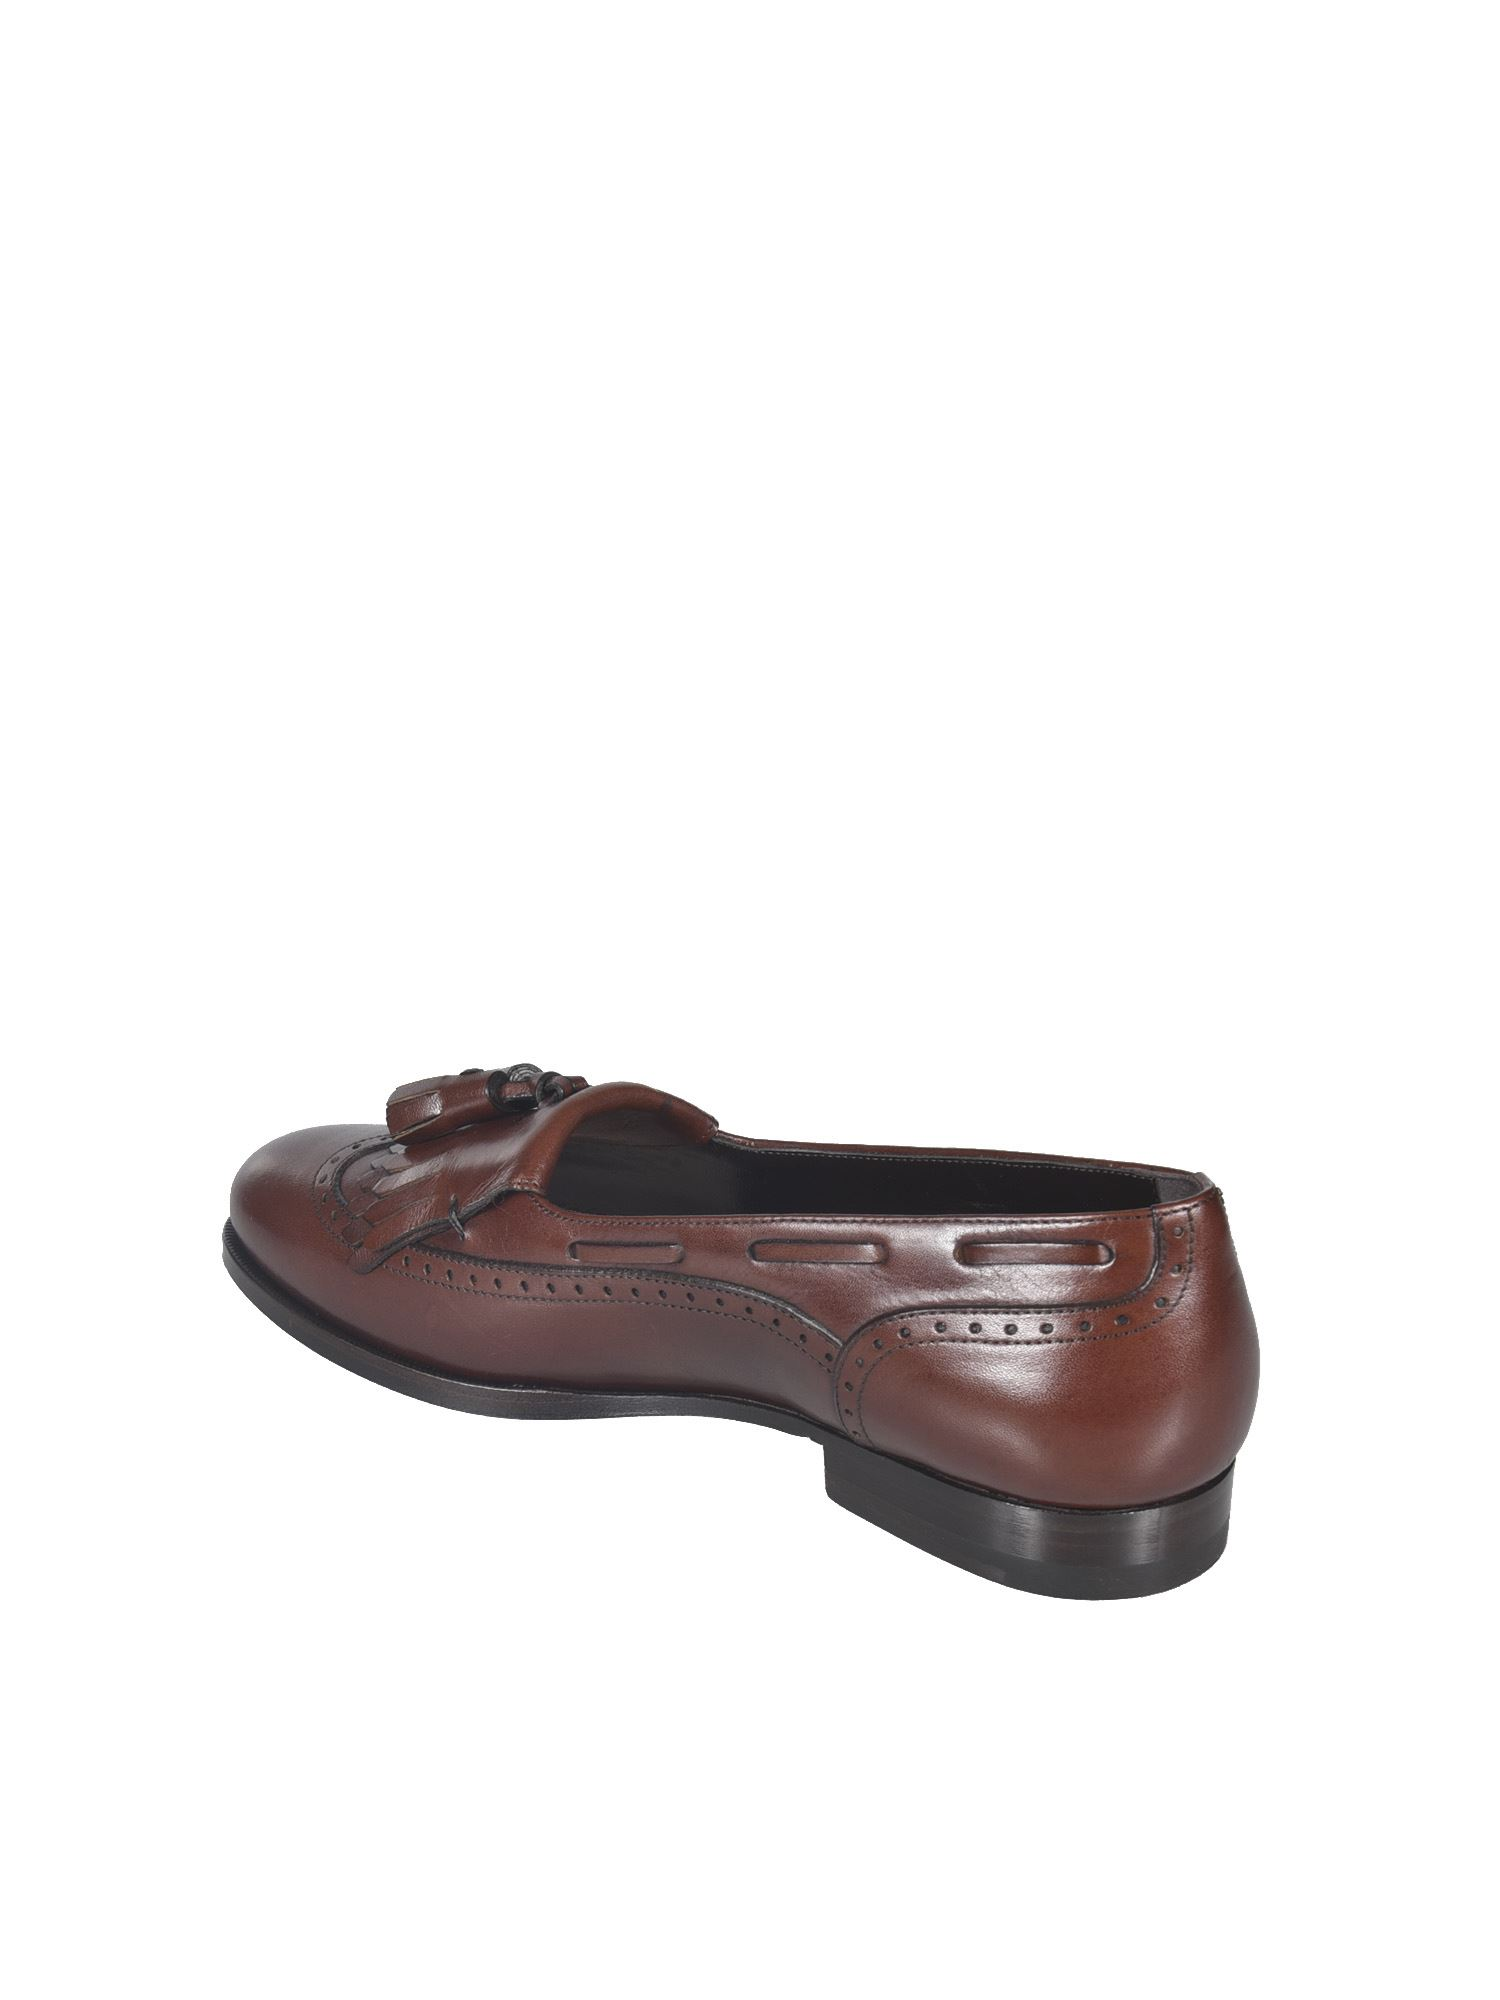 CELINE Leathers ABINGDON LOAFERS IN SEPIA COLOR